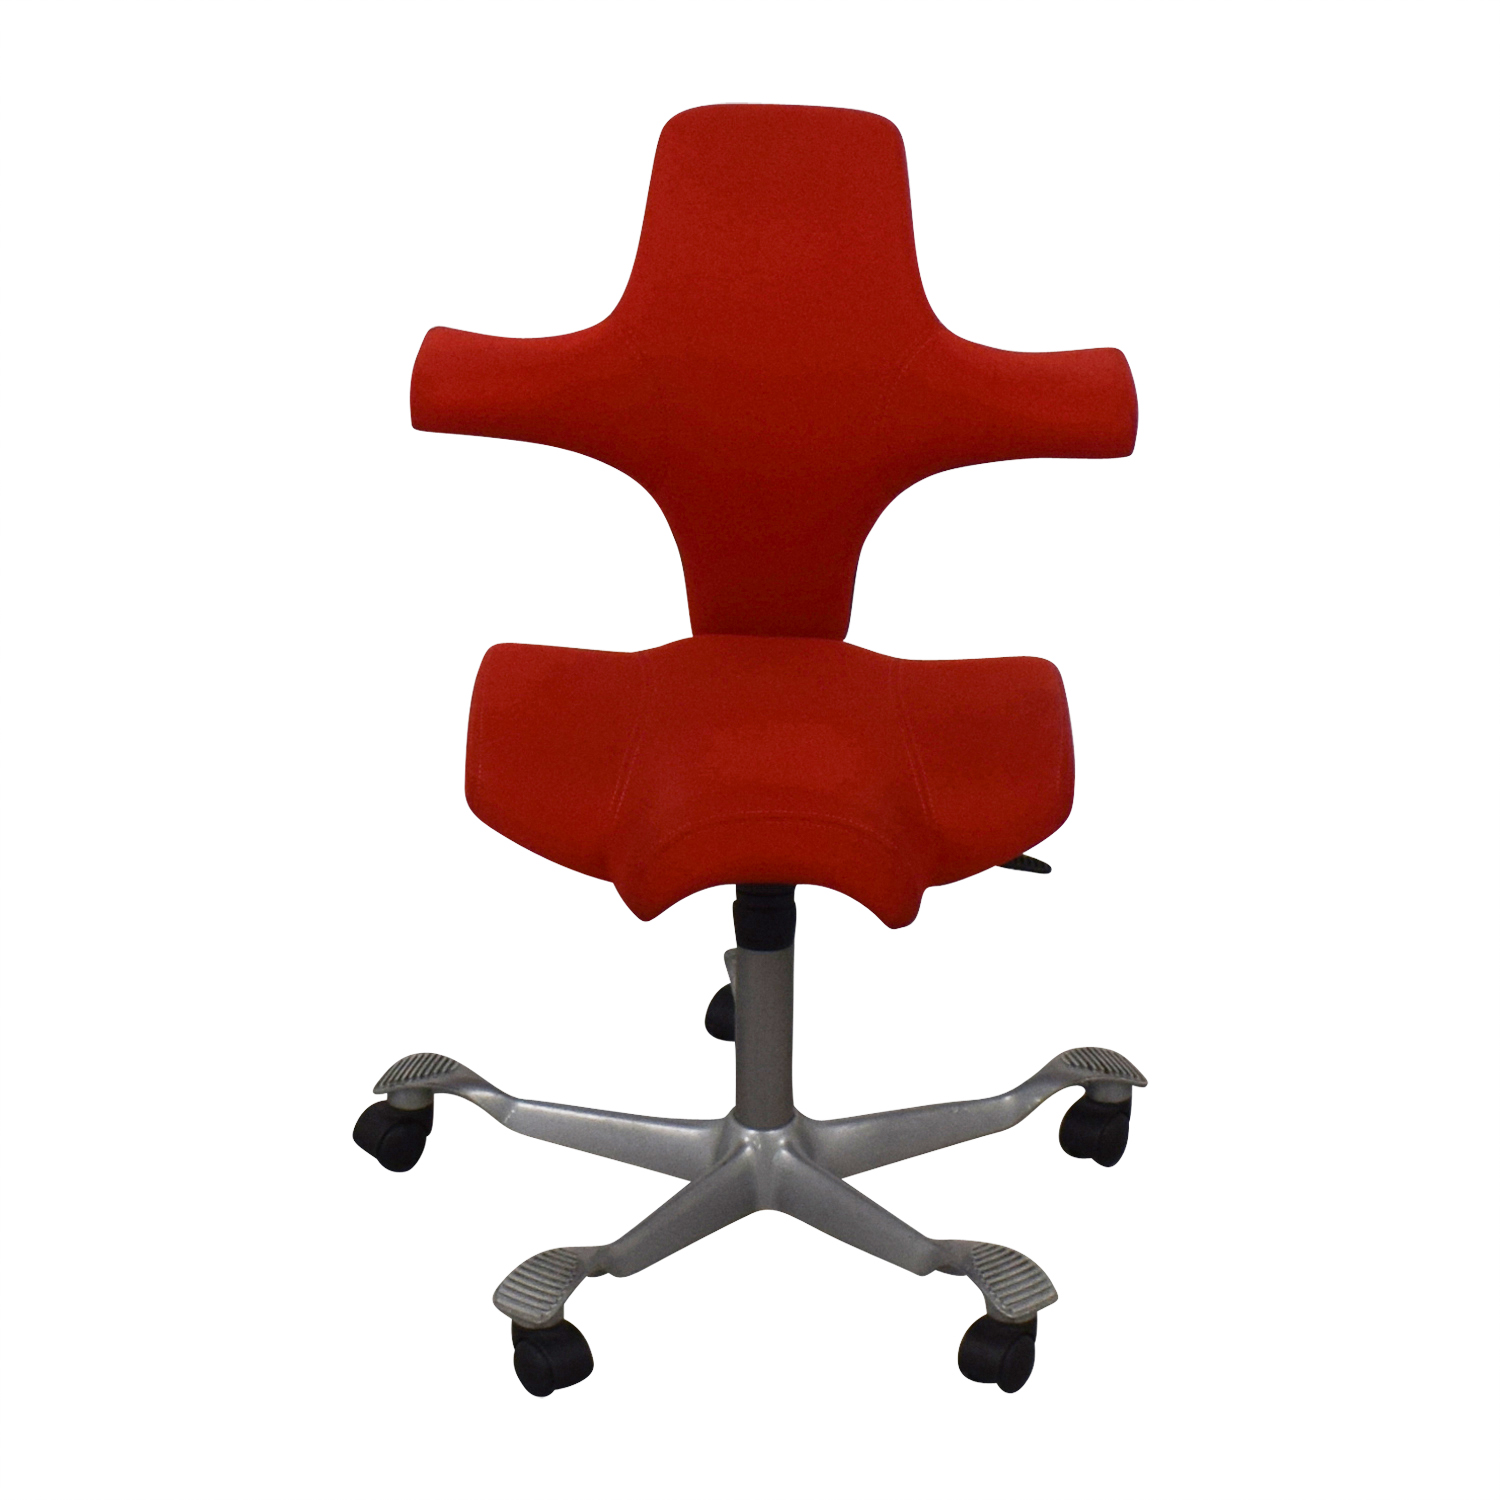 Red Desk Chair 74 Off Hag Hag Capisco Chair Chairs